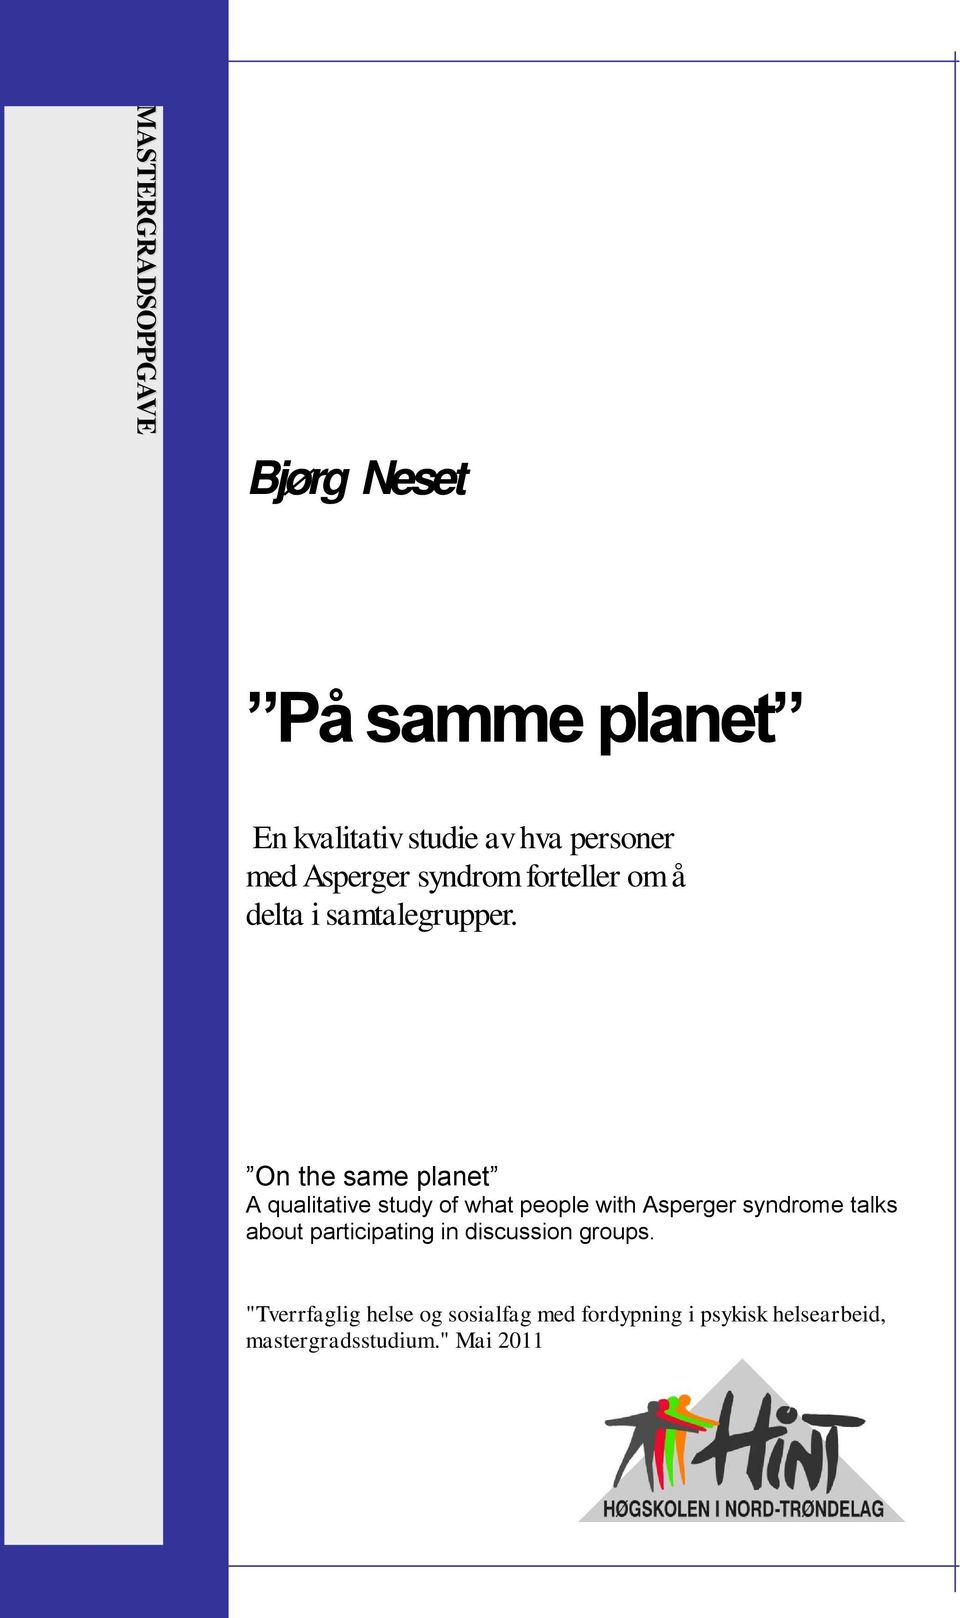 On the same planet A qualitative study of what people with Asperger syndrome talks about